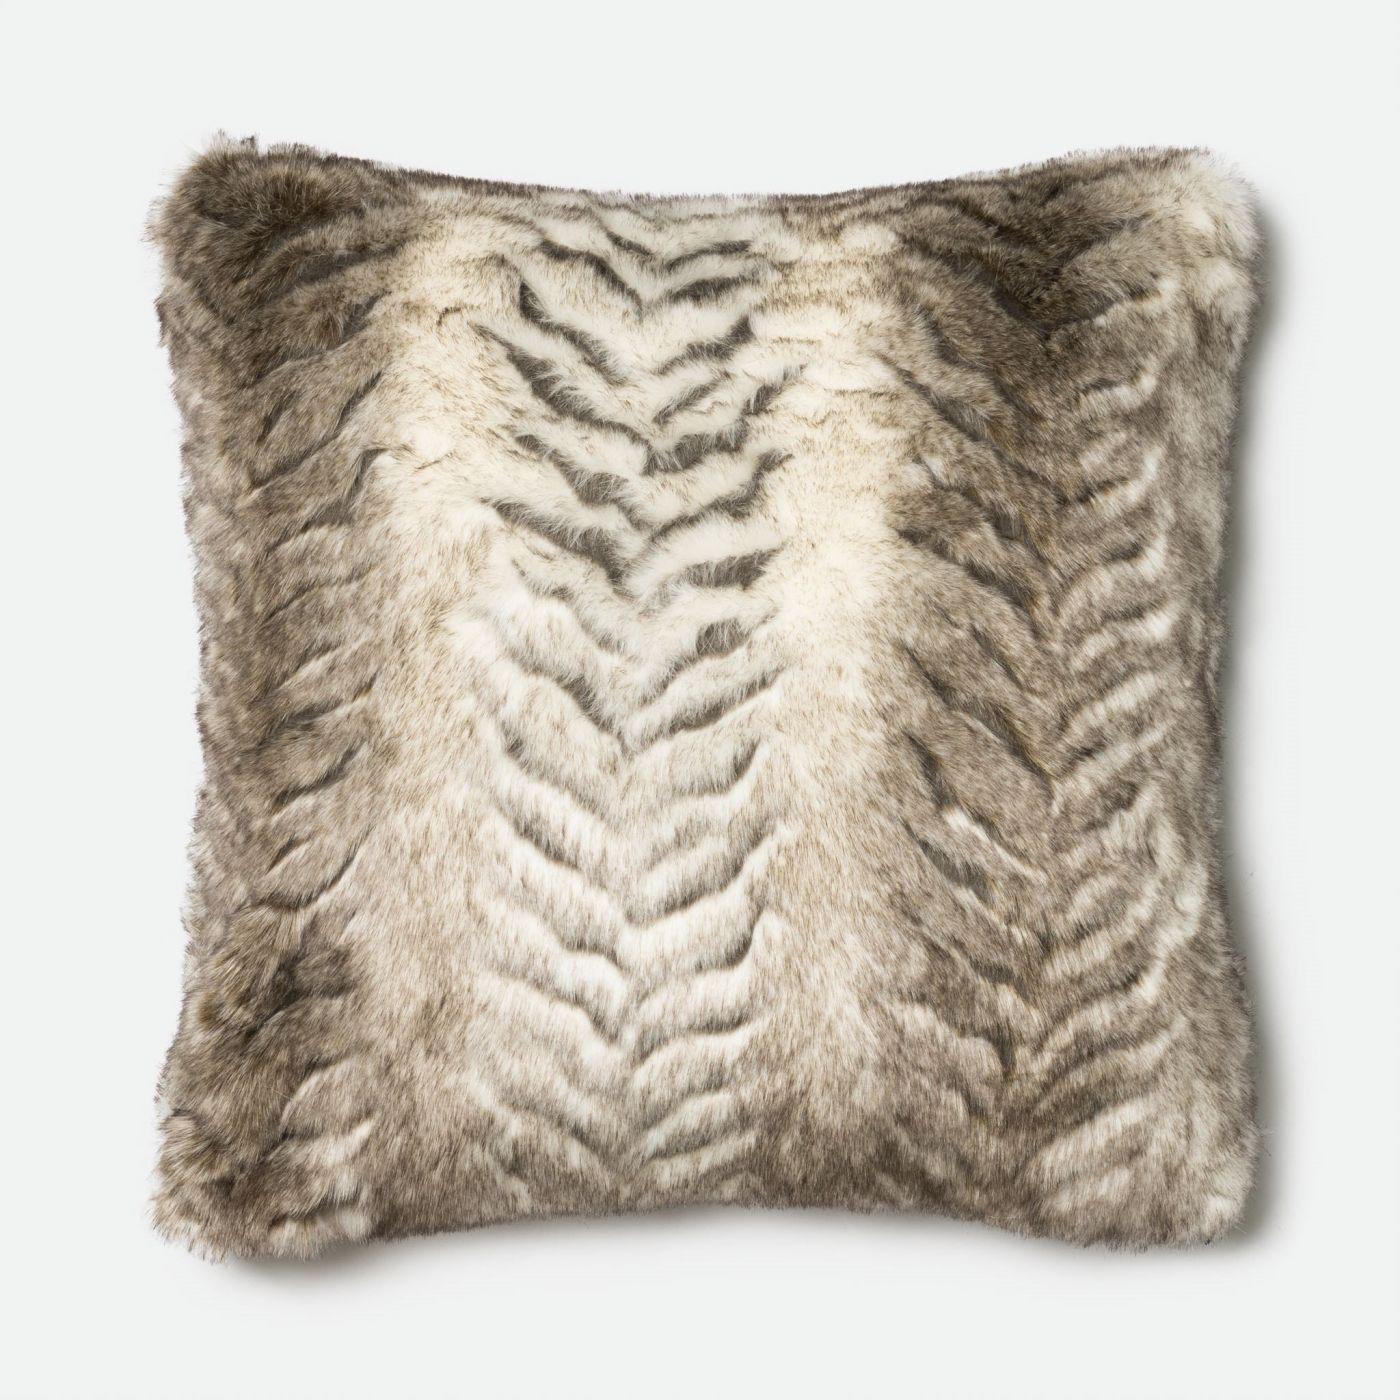 Throw Pillow Warehouse : Loloi Rugs Loloi White / Grey Decorative Throw Pillow (P0397) DSETP0397WHGYPIL3. Only $119.00 at ...